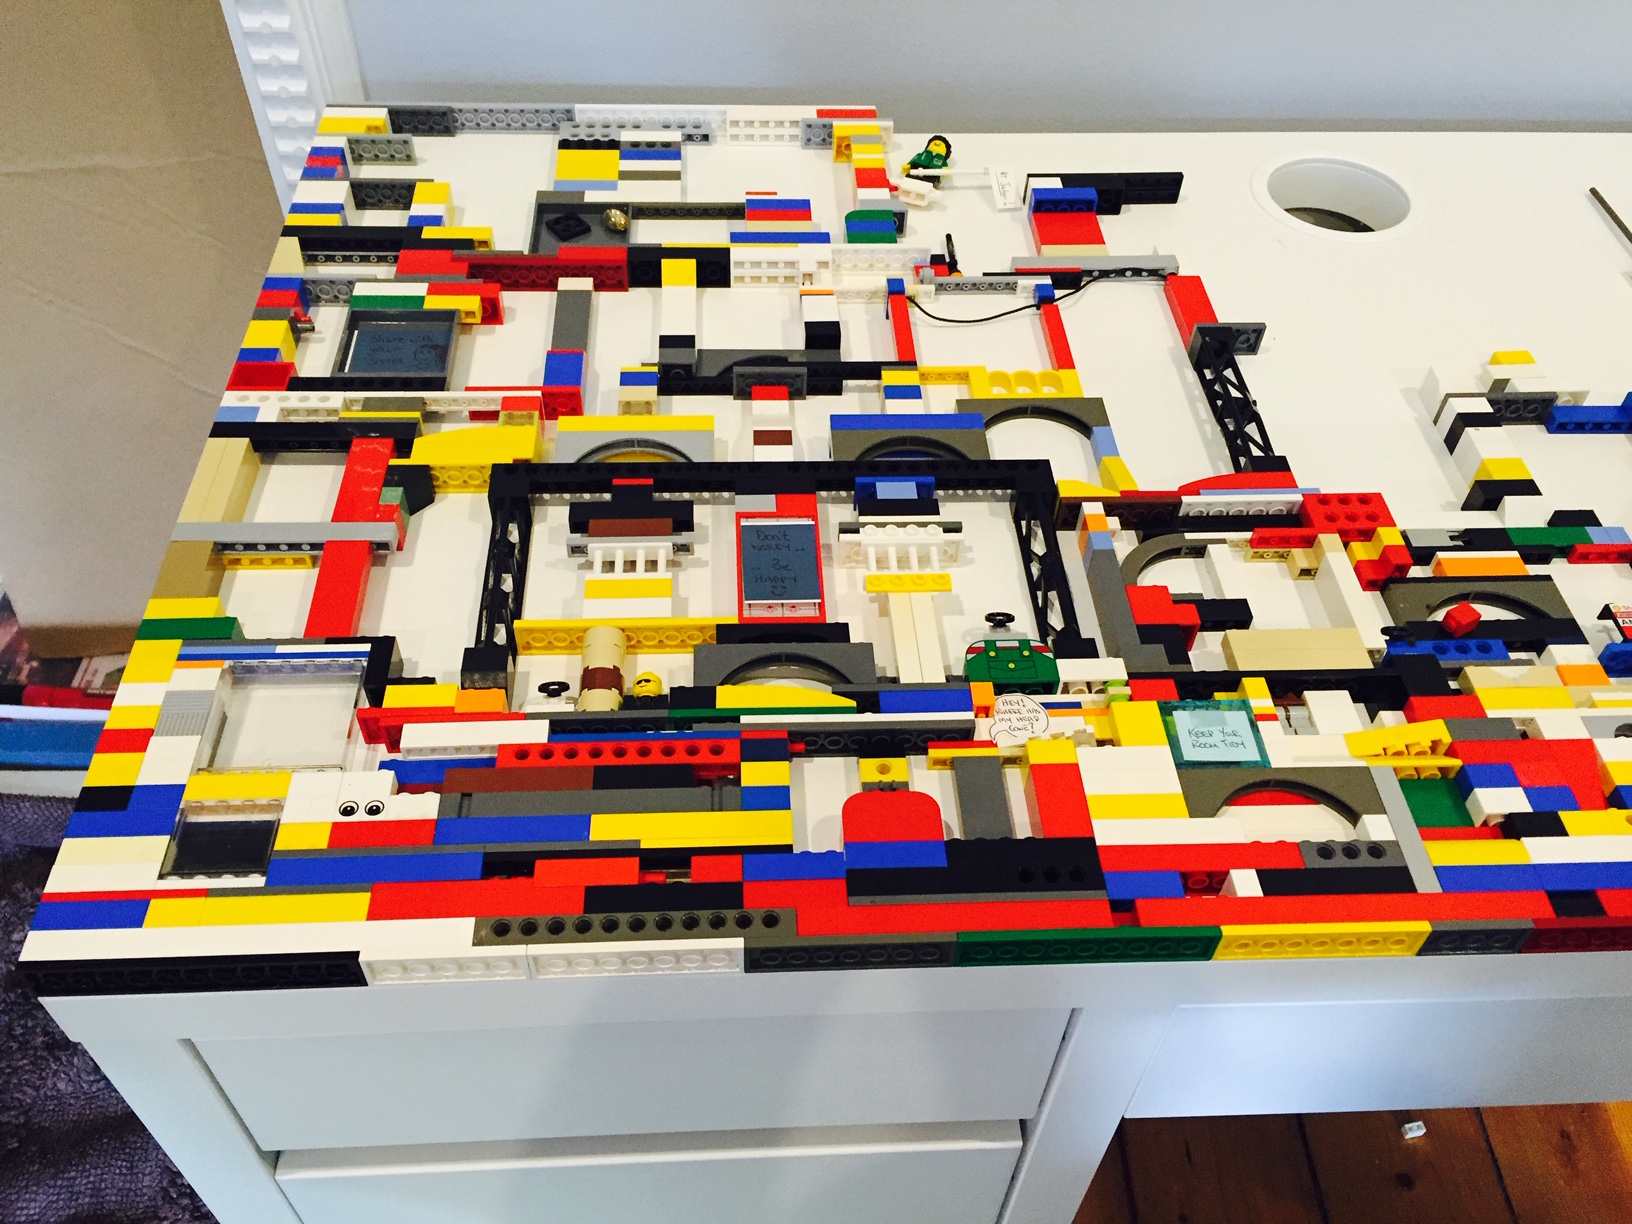 The lego desk is coming together